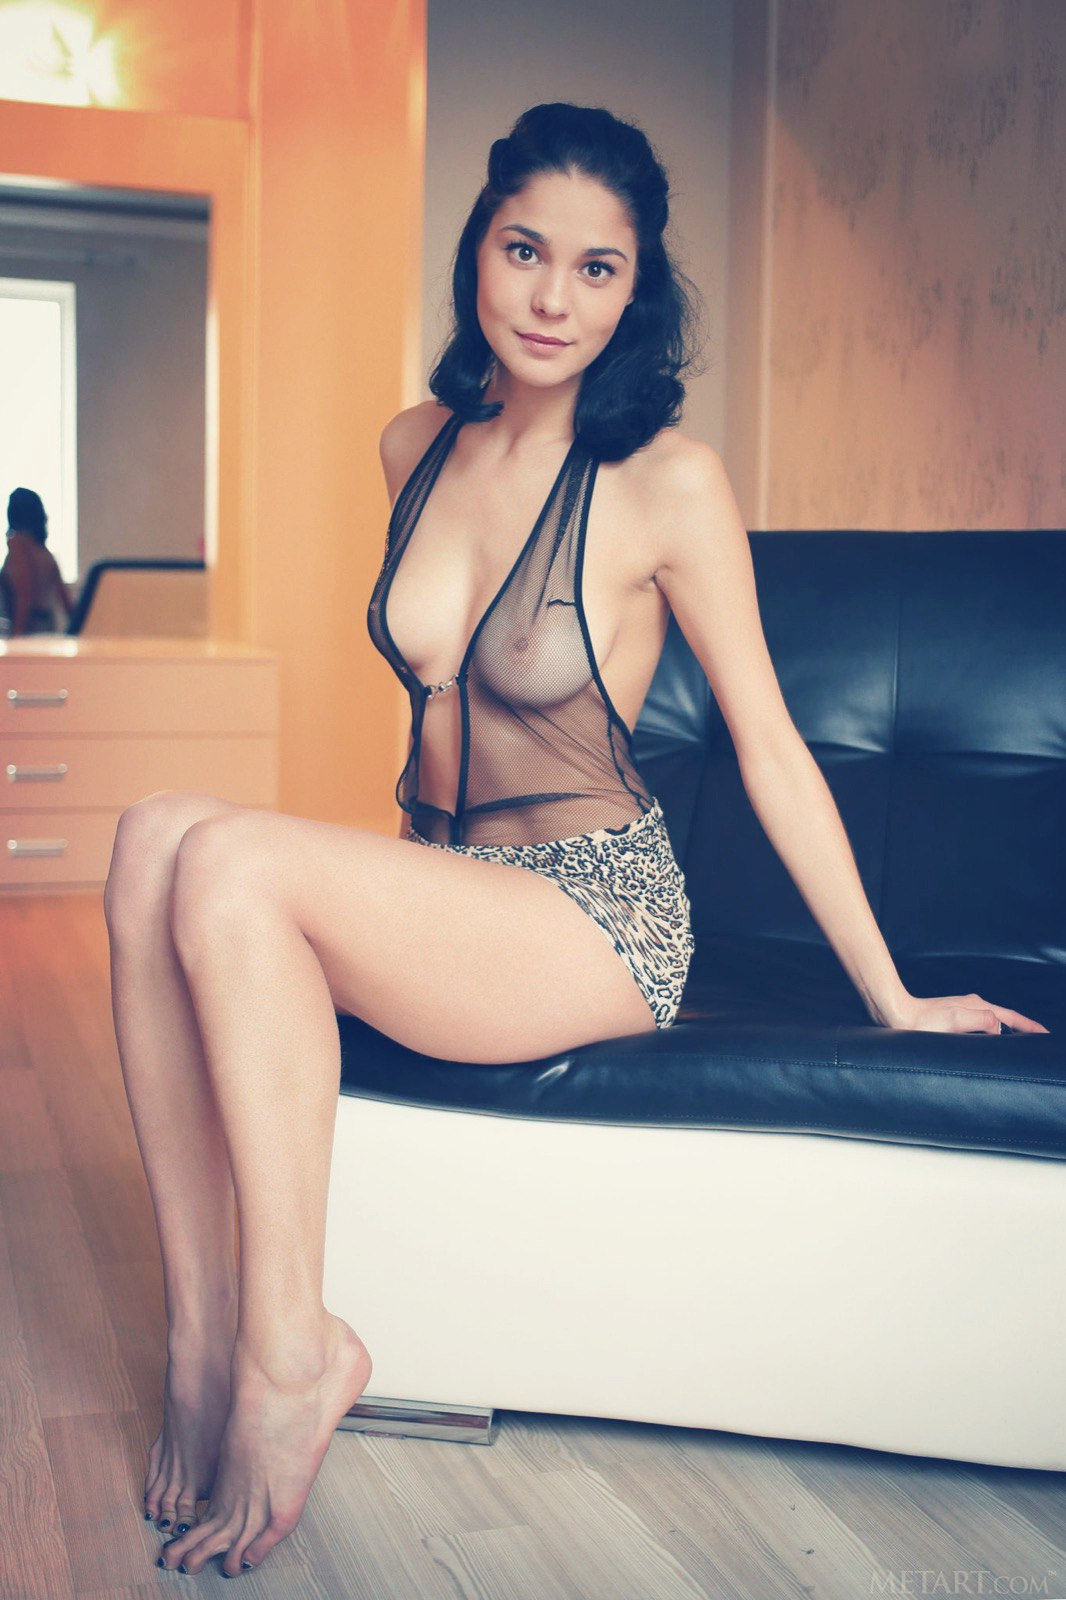 Image URL: http://amateurgirls.info/uploads/posts/2016-06/1465465293_001.jpg  Click to view this fusker